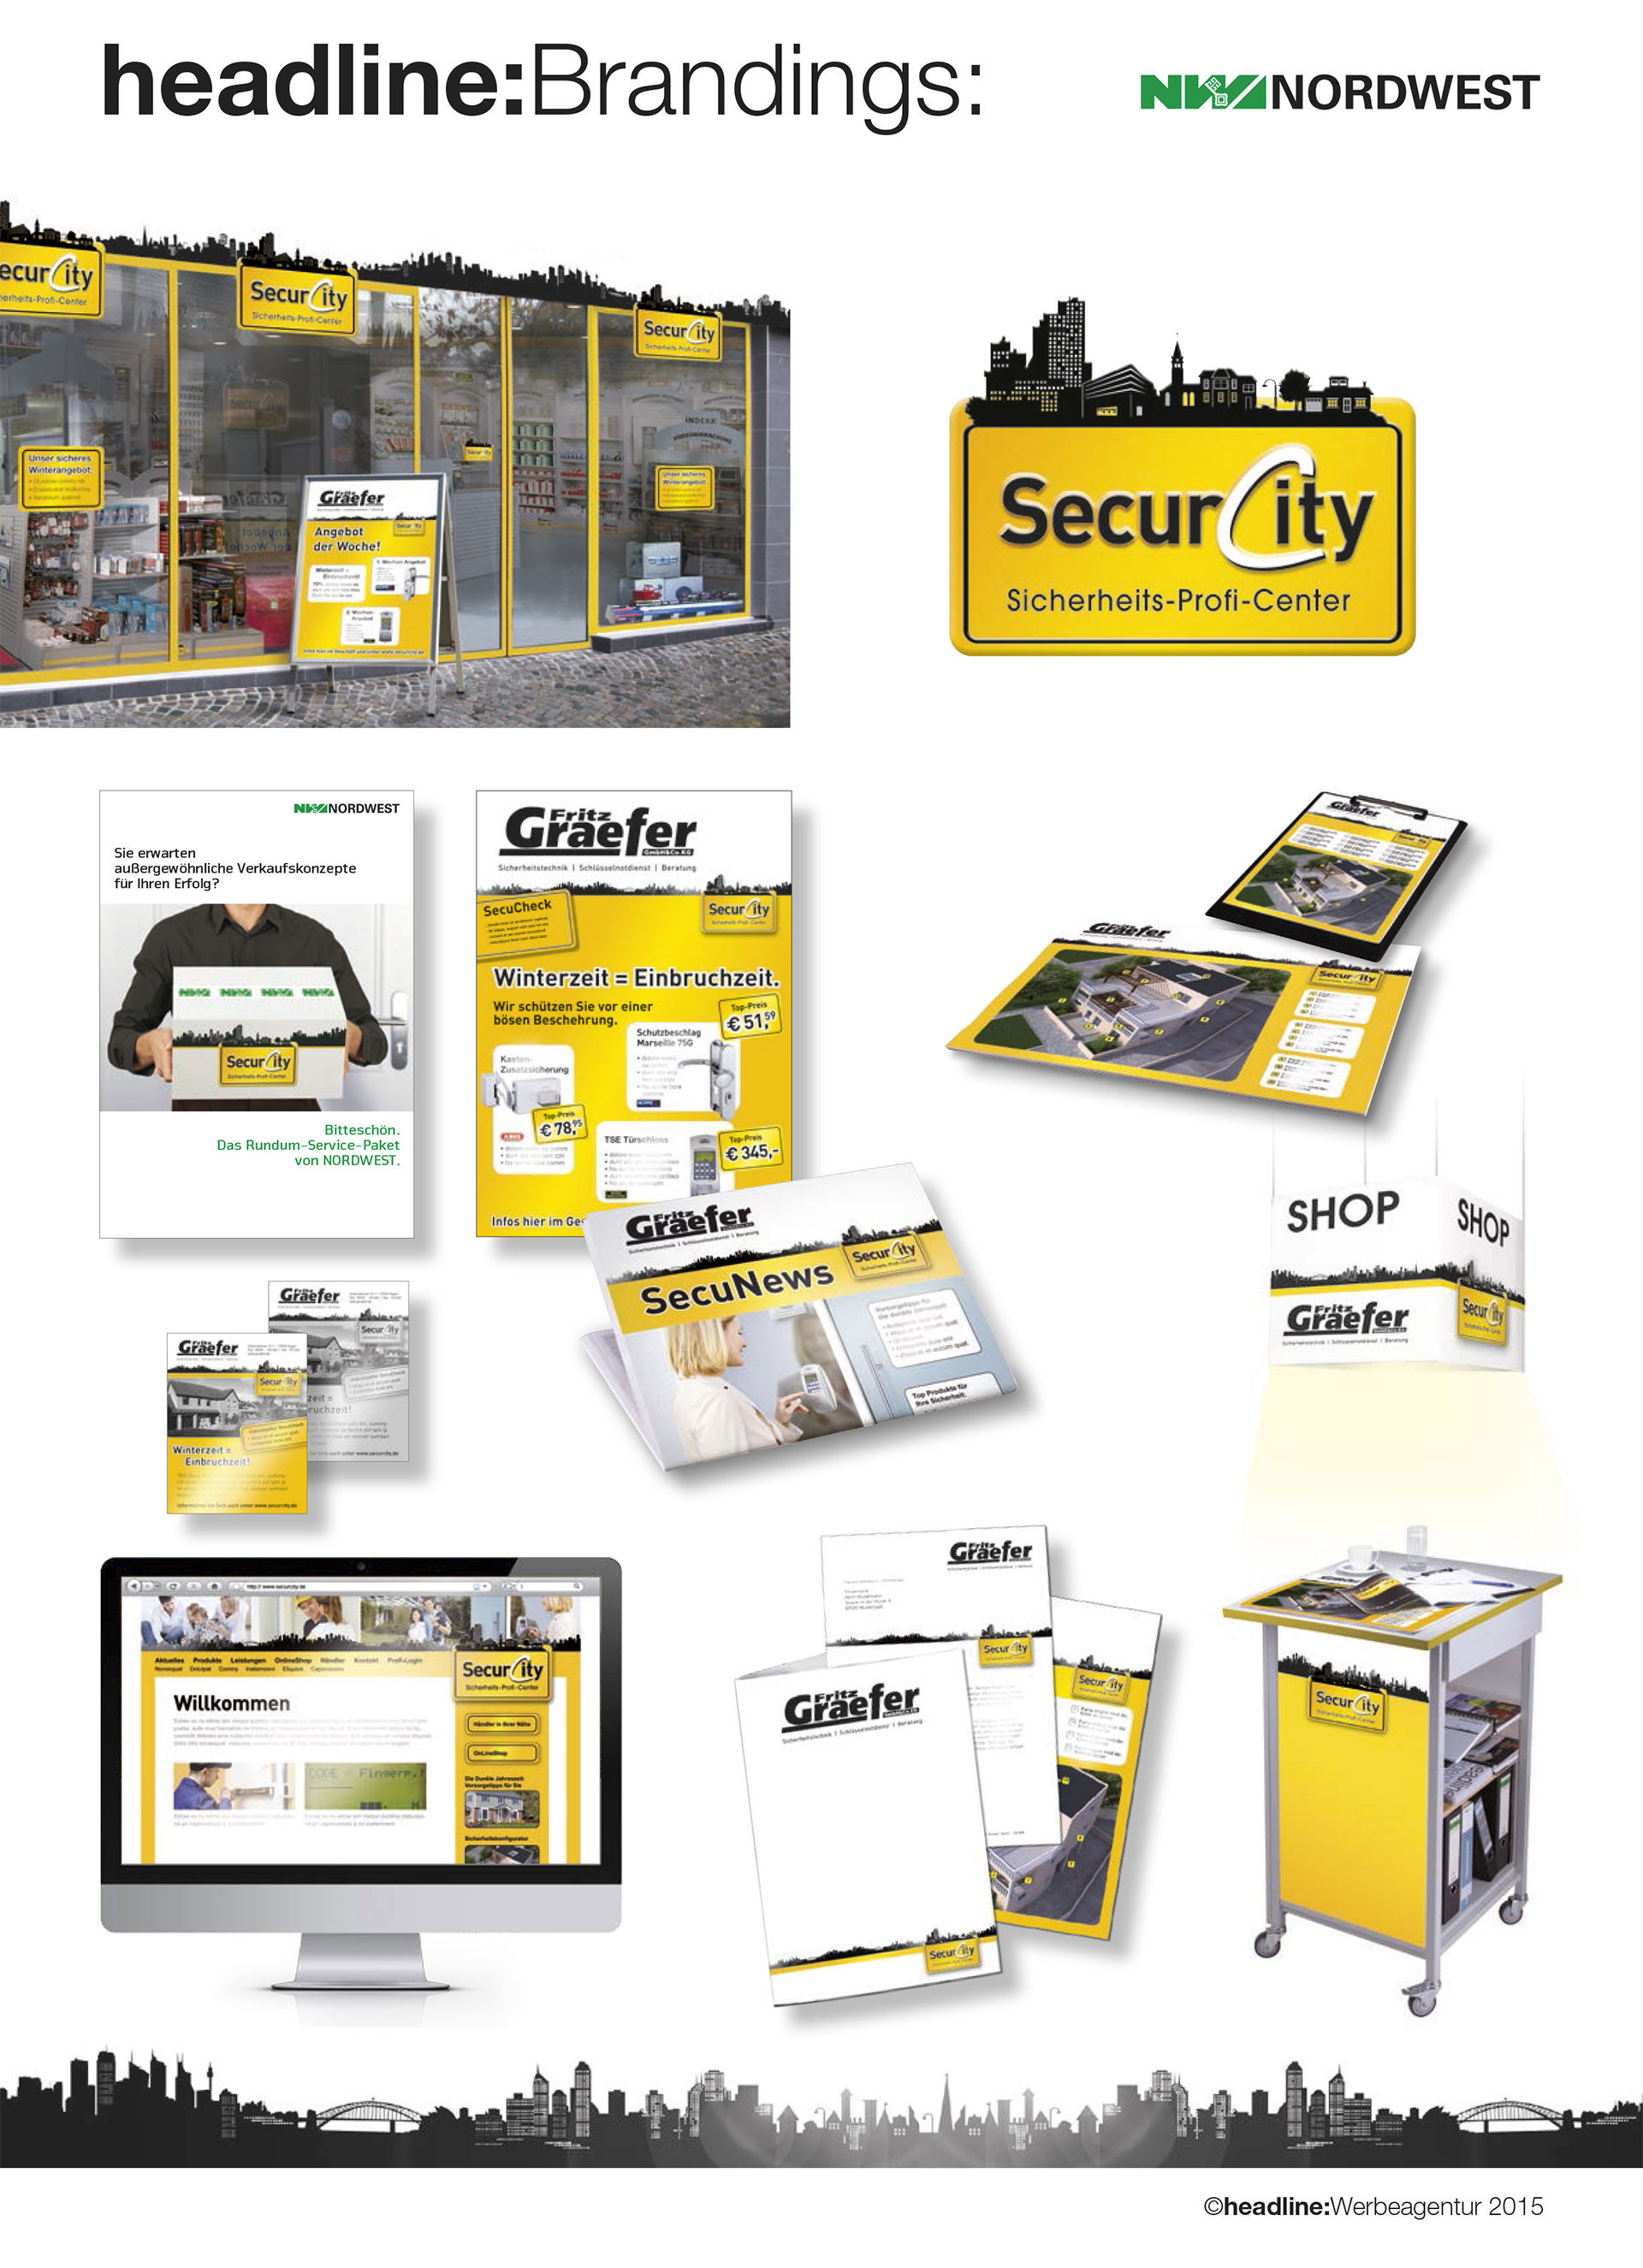 Das Securcity Branding by headline